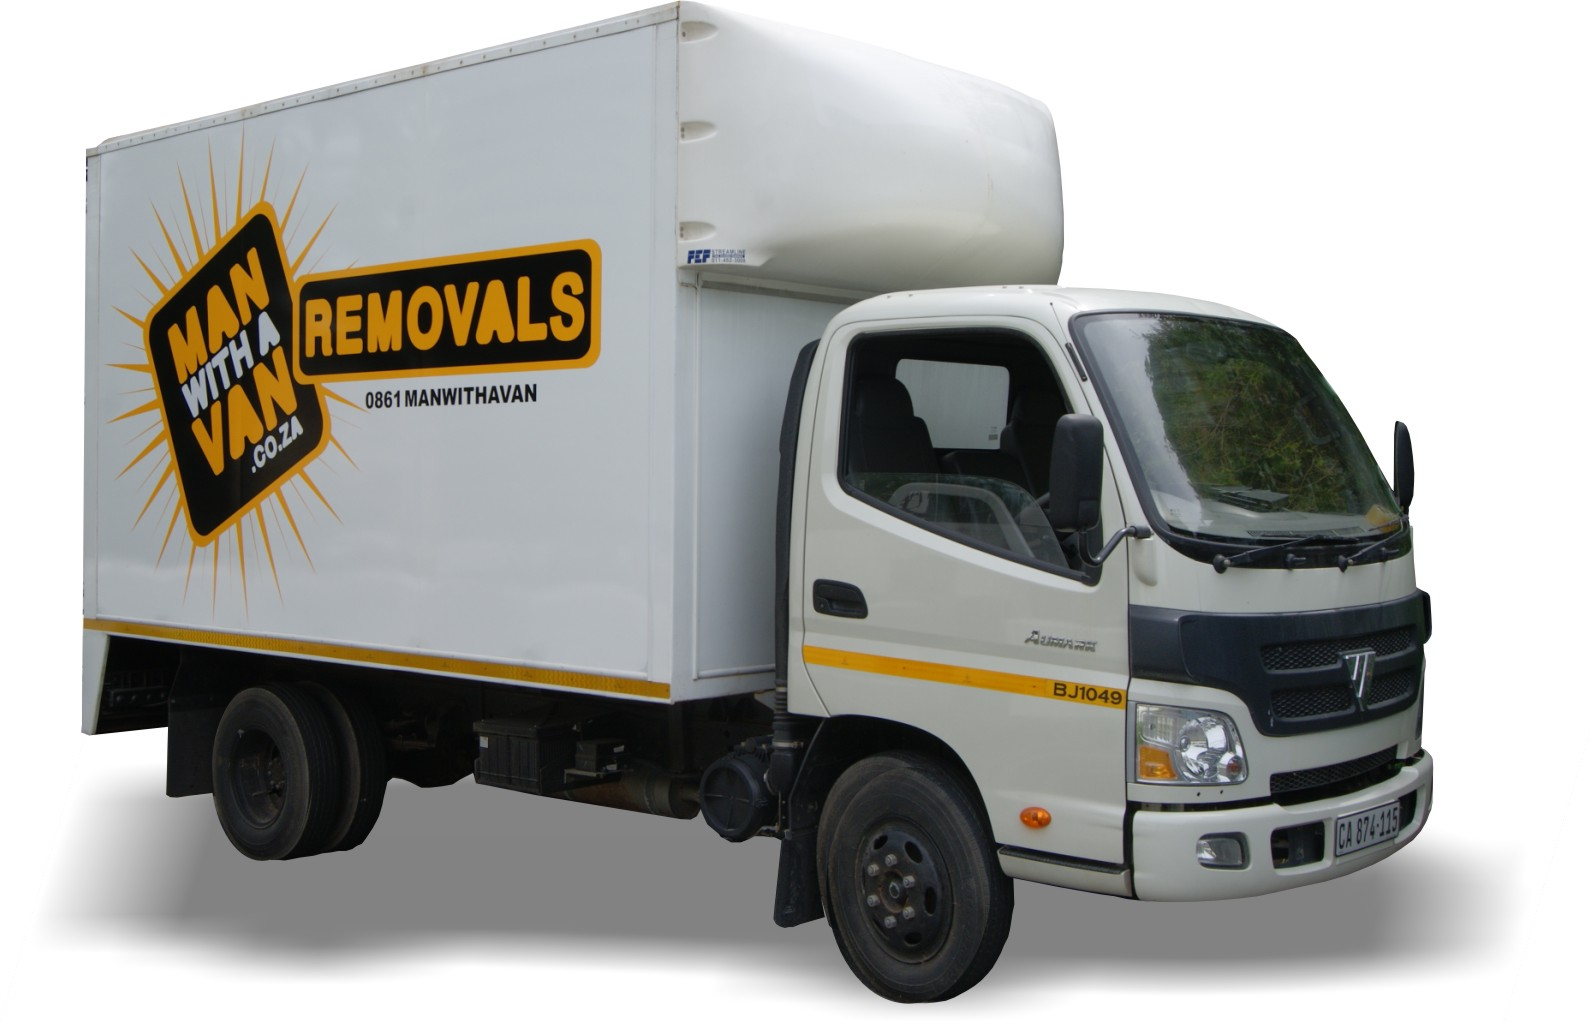 Furniture removal services mesmerizing interior design for Furniture movers seattle